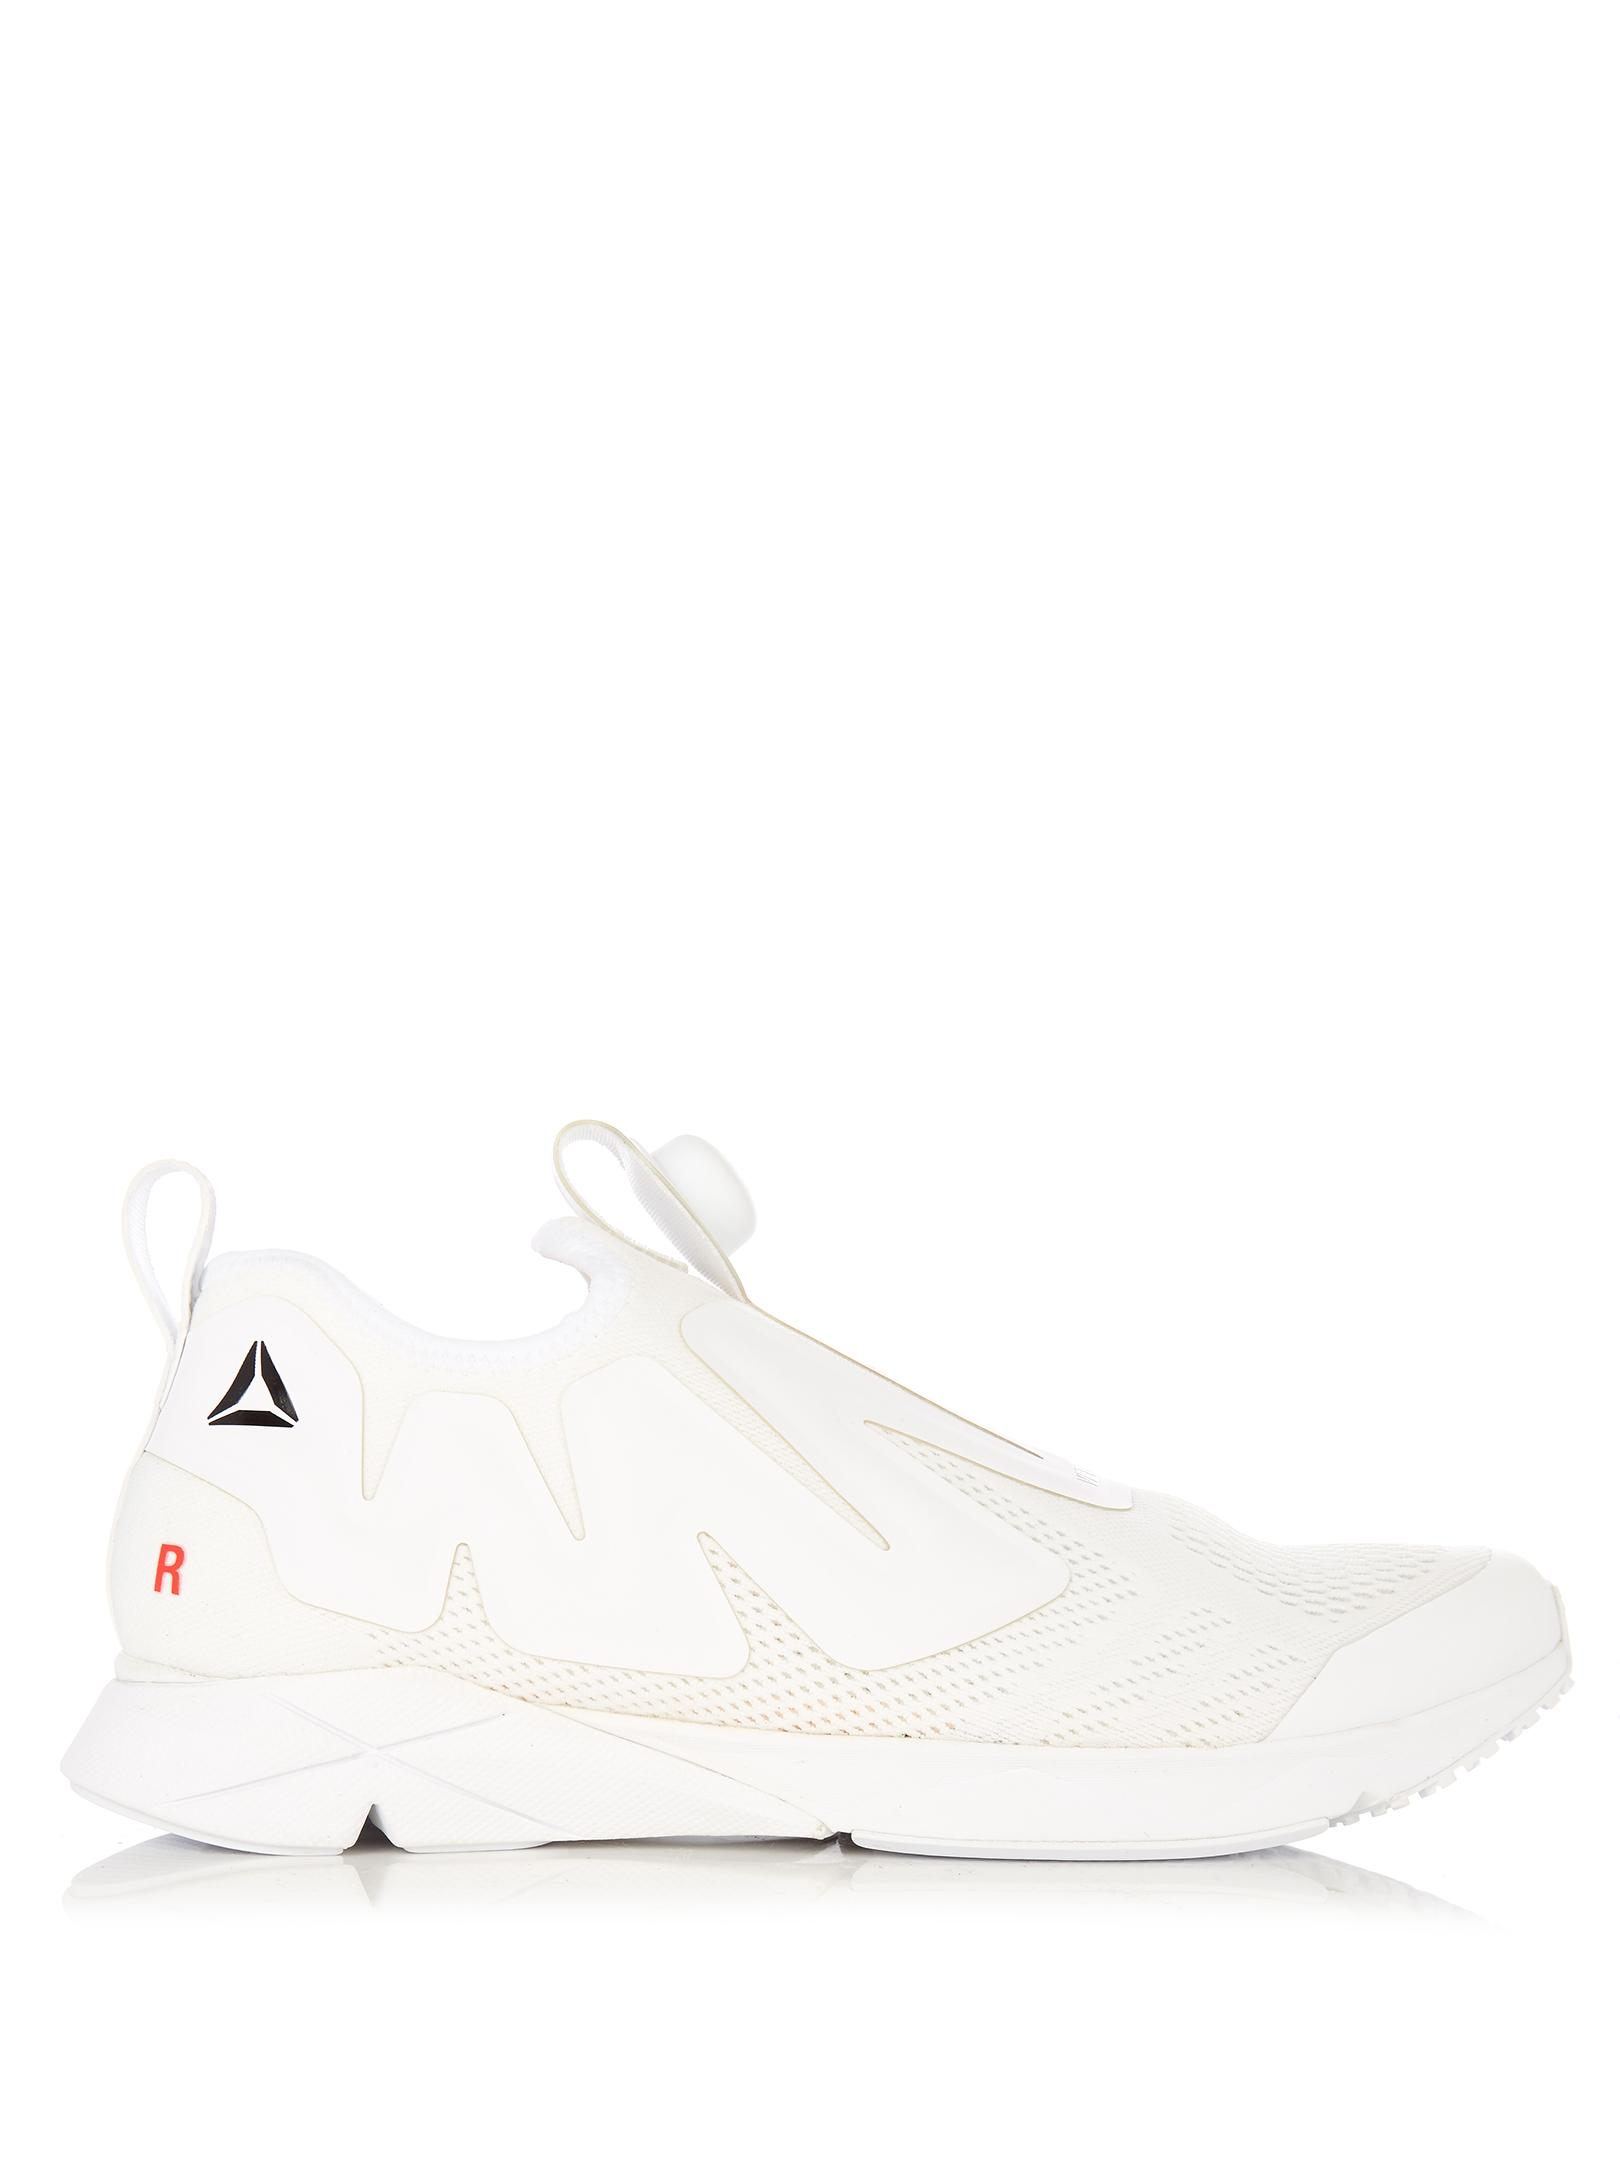 Lyst - Vetements X Reebok Instapump Fury Trainers in White for Men eb4ad46e8